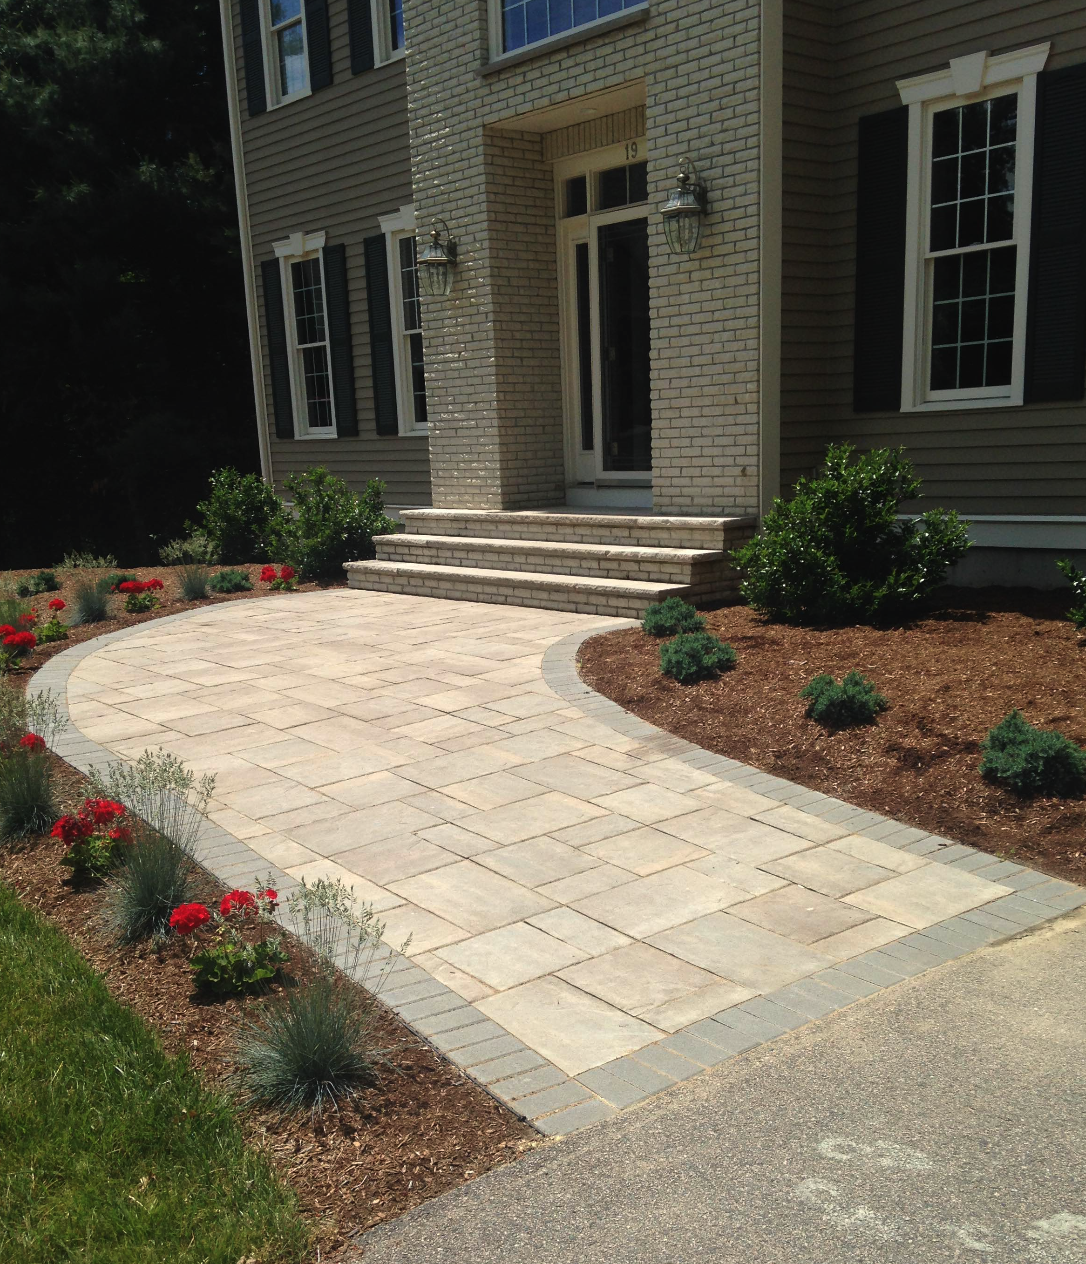 Add Character to Your Walkway with These Edging Ideas in Chestnut Hill, MA